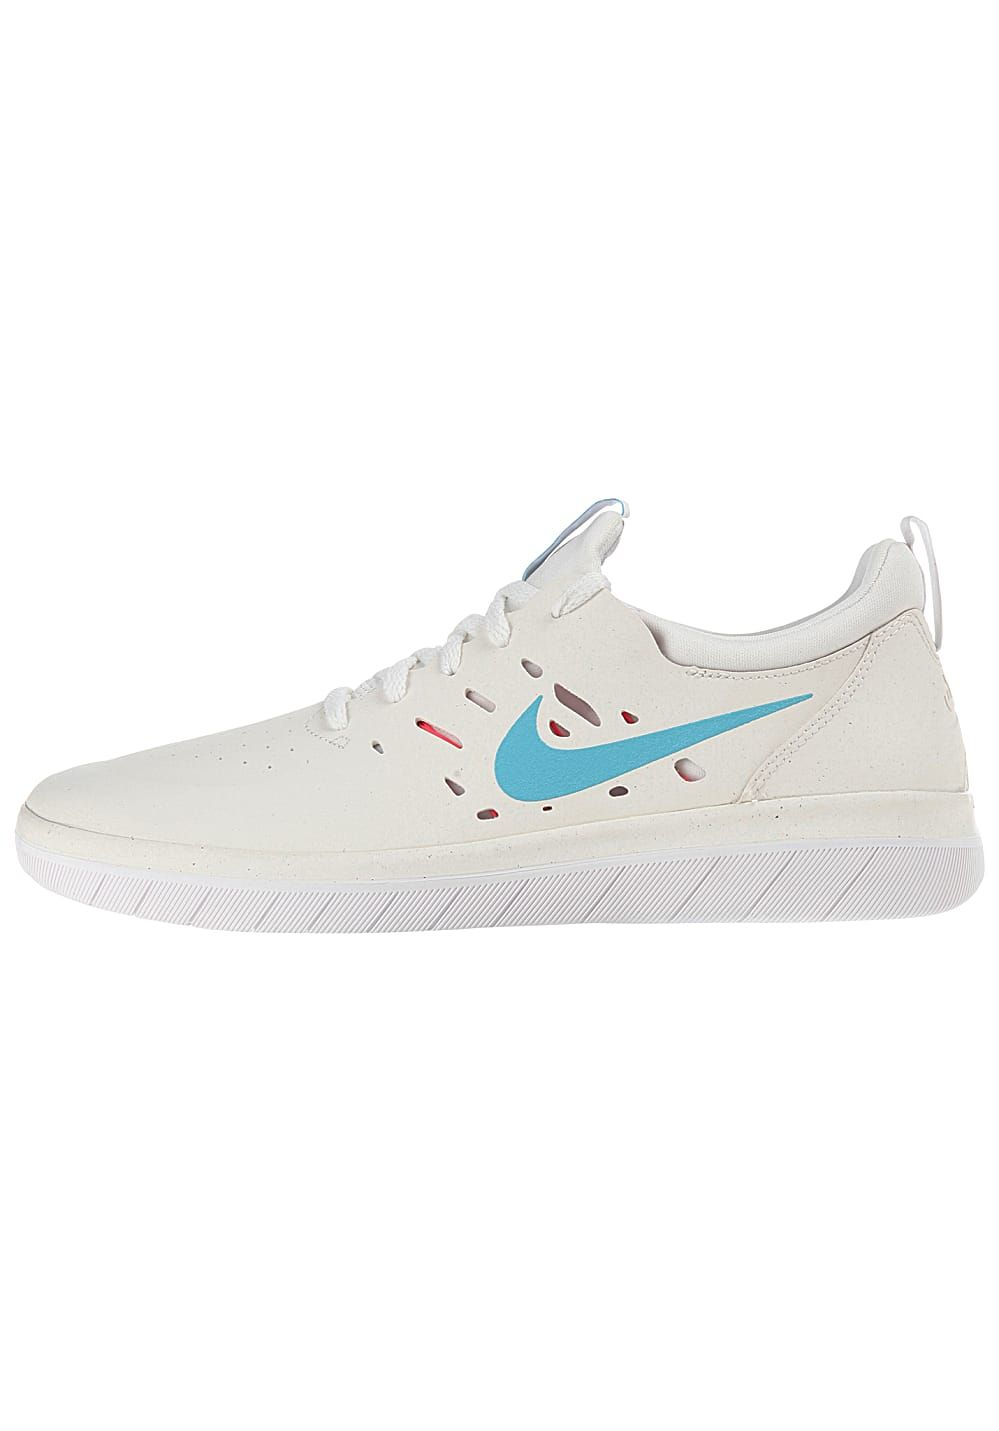 nike sb homme blanche